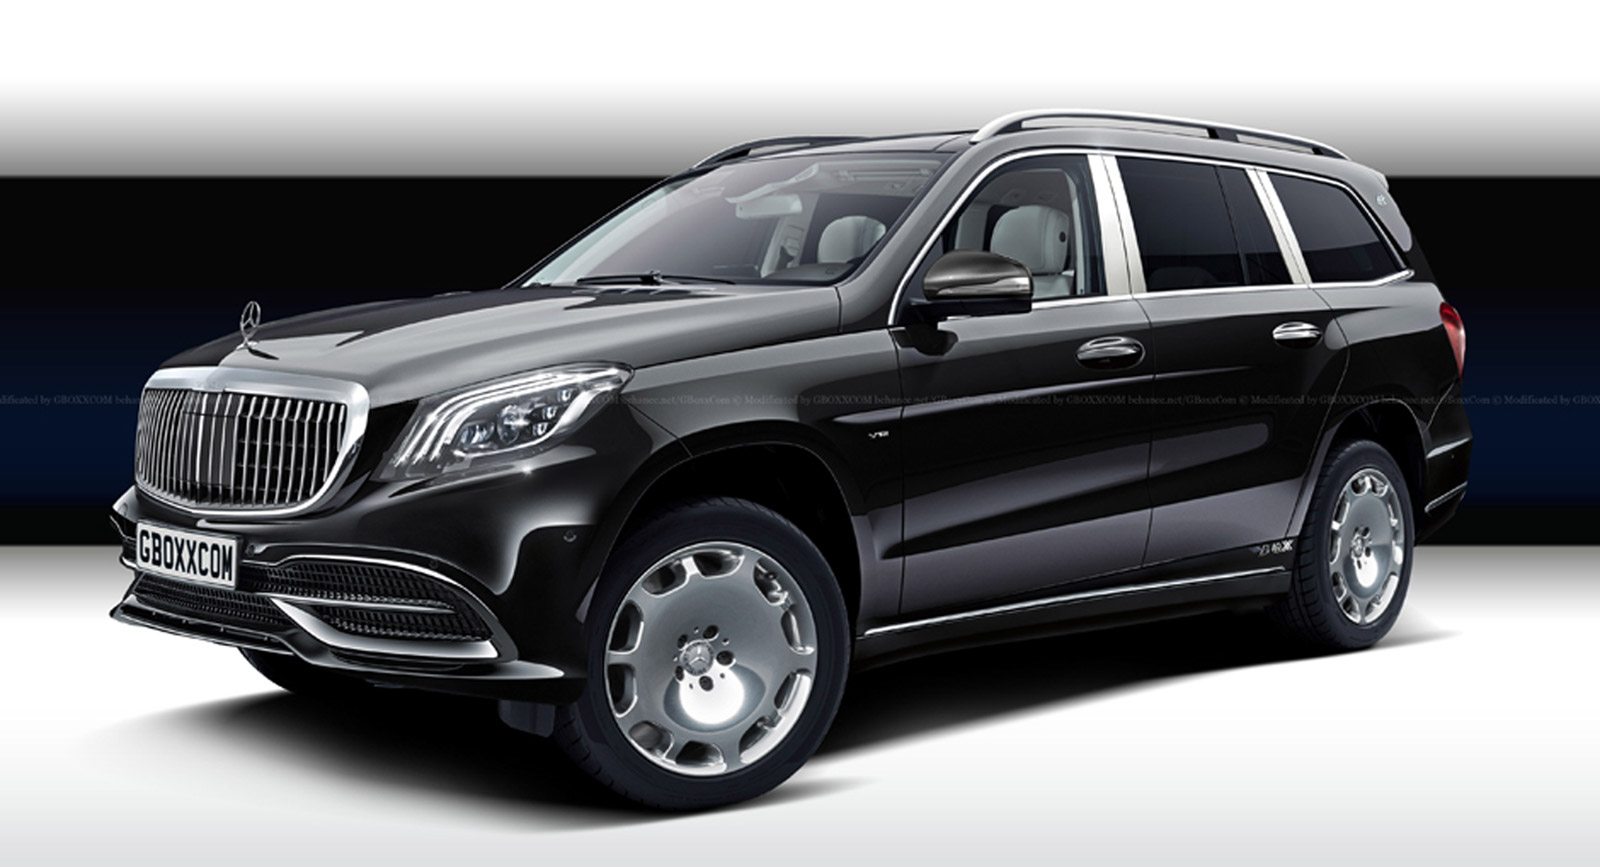 The Maybach Gls Will Probably Look Something Like This But Better